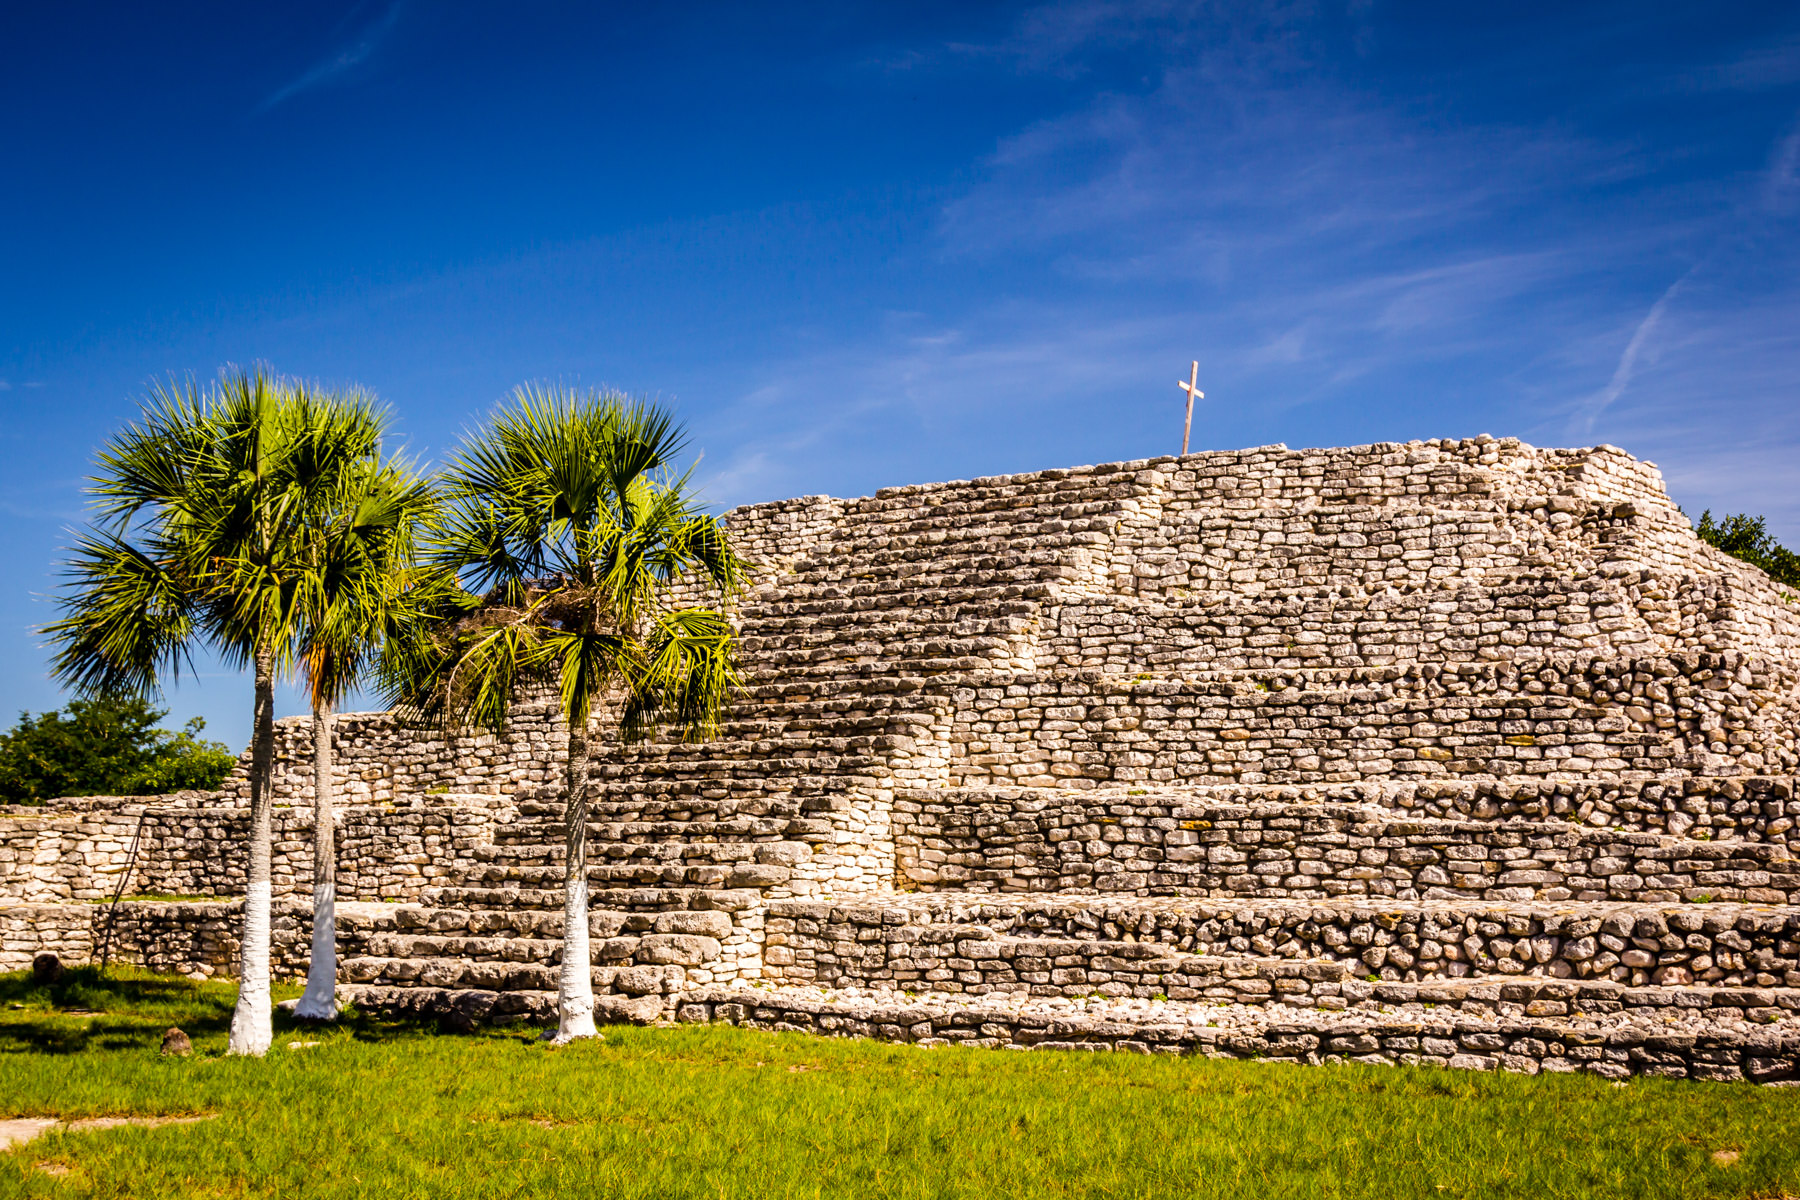 The main pyramid at the ruins of the Mayan city of Xcambo, Yucatan, Mexico.